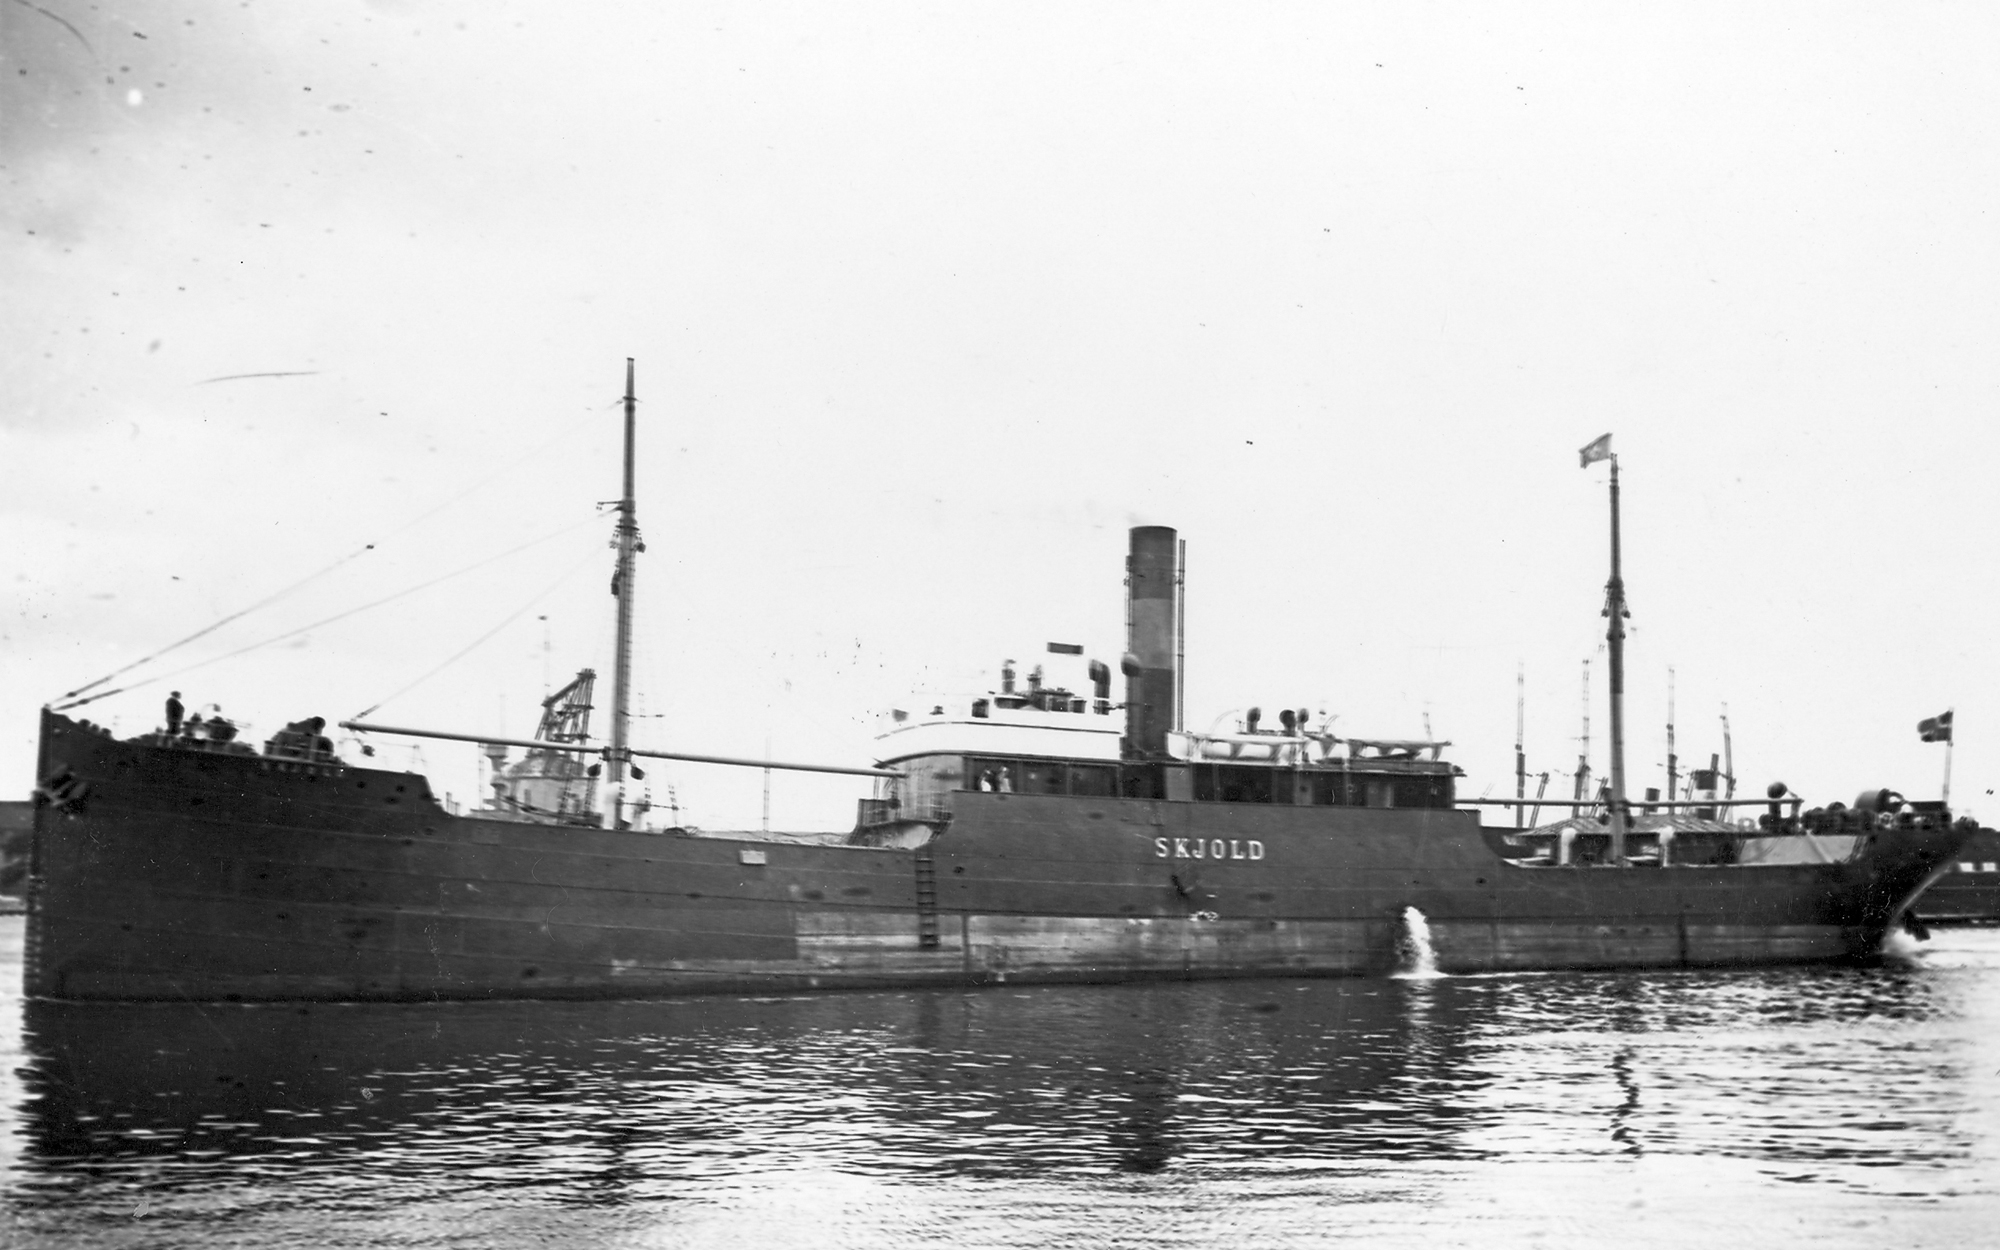 Egebjerg was signed on the SS <em>Skjold</em> when the war broke out. The ship was requisitioned by the Ministry of War Transport during the Second World War in May 1940. (Marine Museum of Denmark)